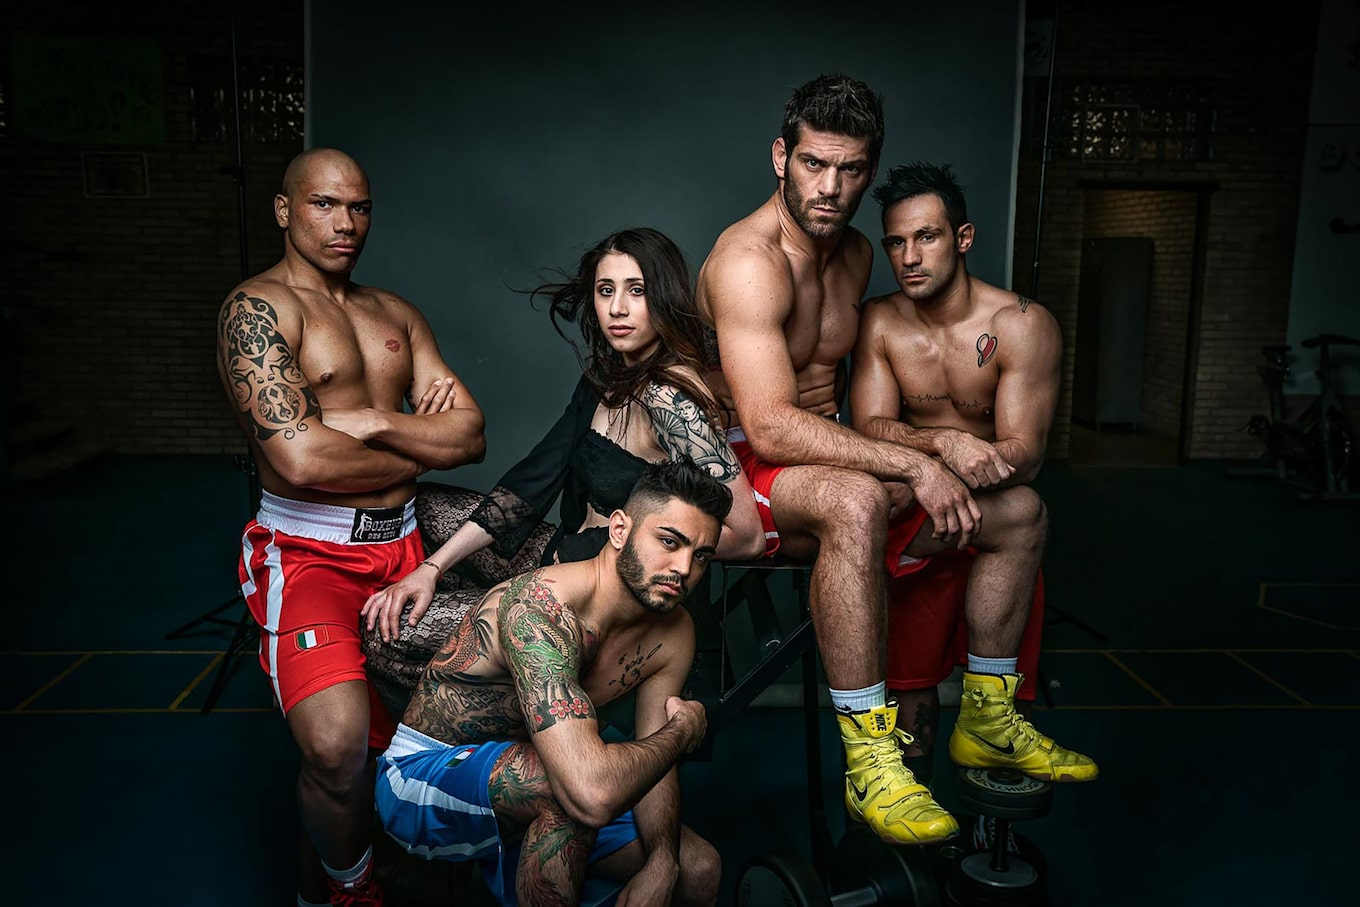 maki-galimberti-sony-alpha-7RII-group-of-mixed-boxers-pose-inside-gym